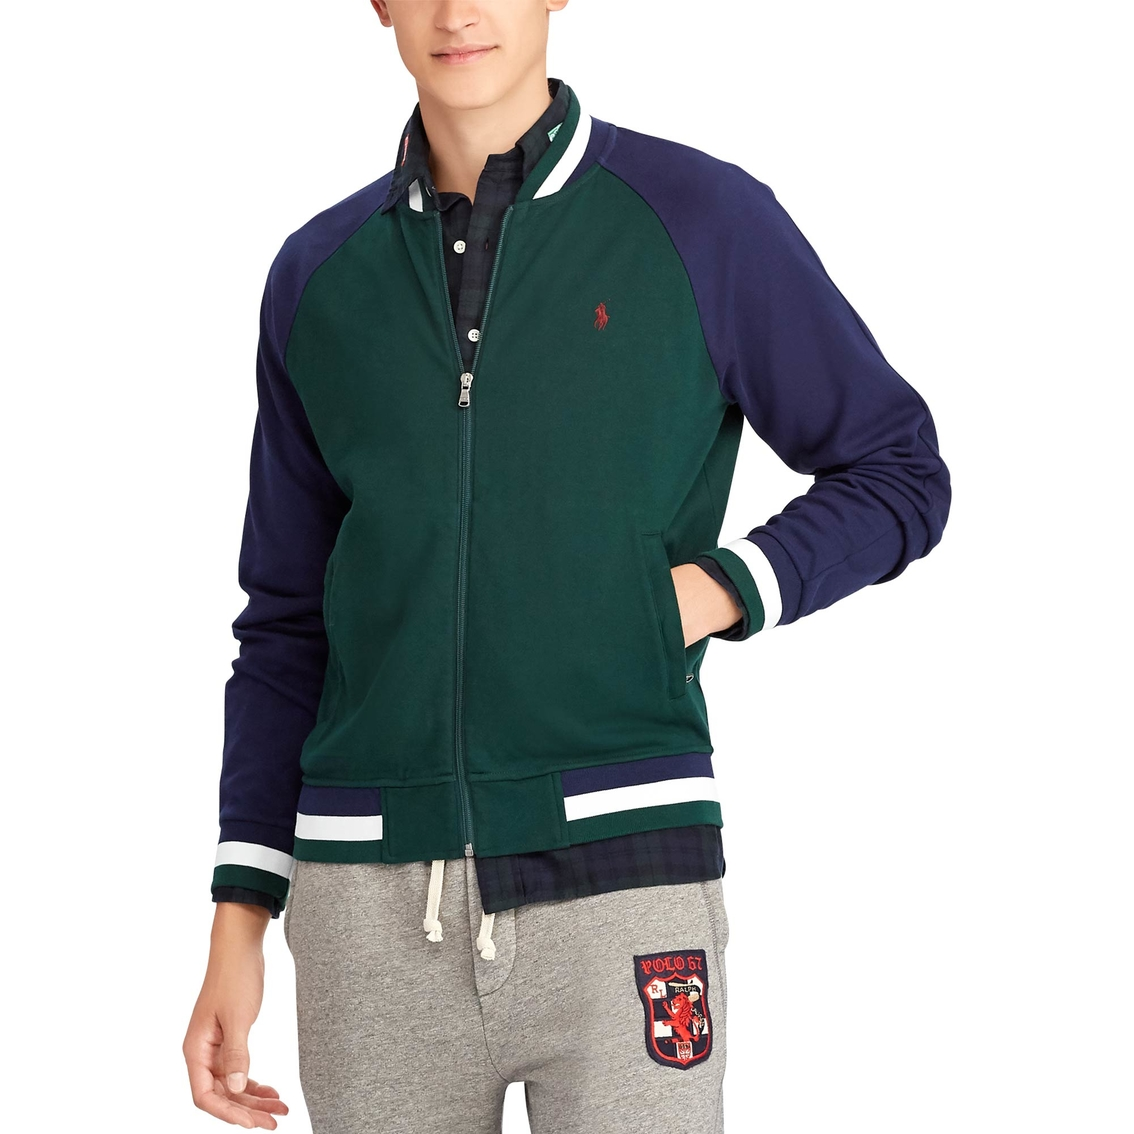 Polo Ralph Lauren Cotton Baseball Jacket   Hoodies   Jackets ... 83d1d910d37